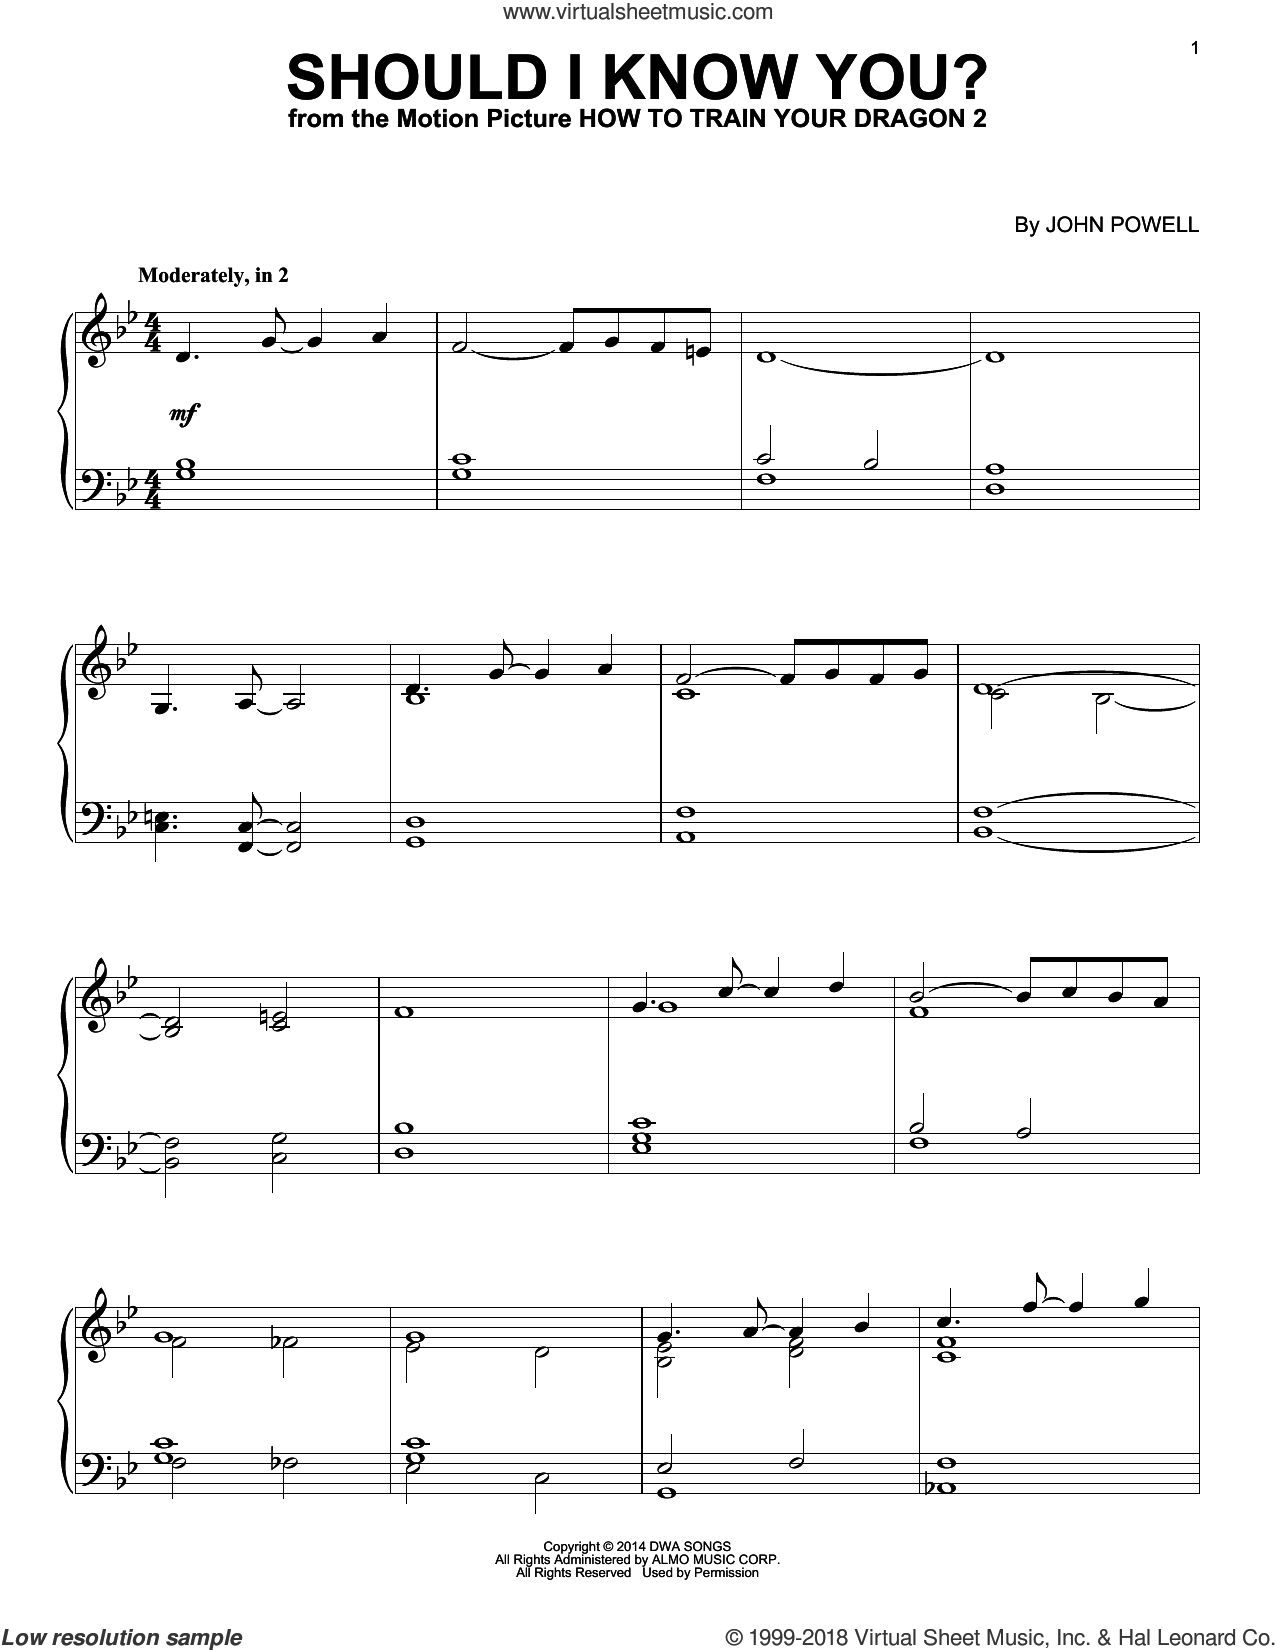 Should I Know You? (from How to Train Your Dragon) sheet music for piano solo by John Powell, intermediate skill level